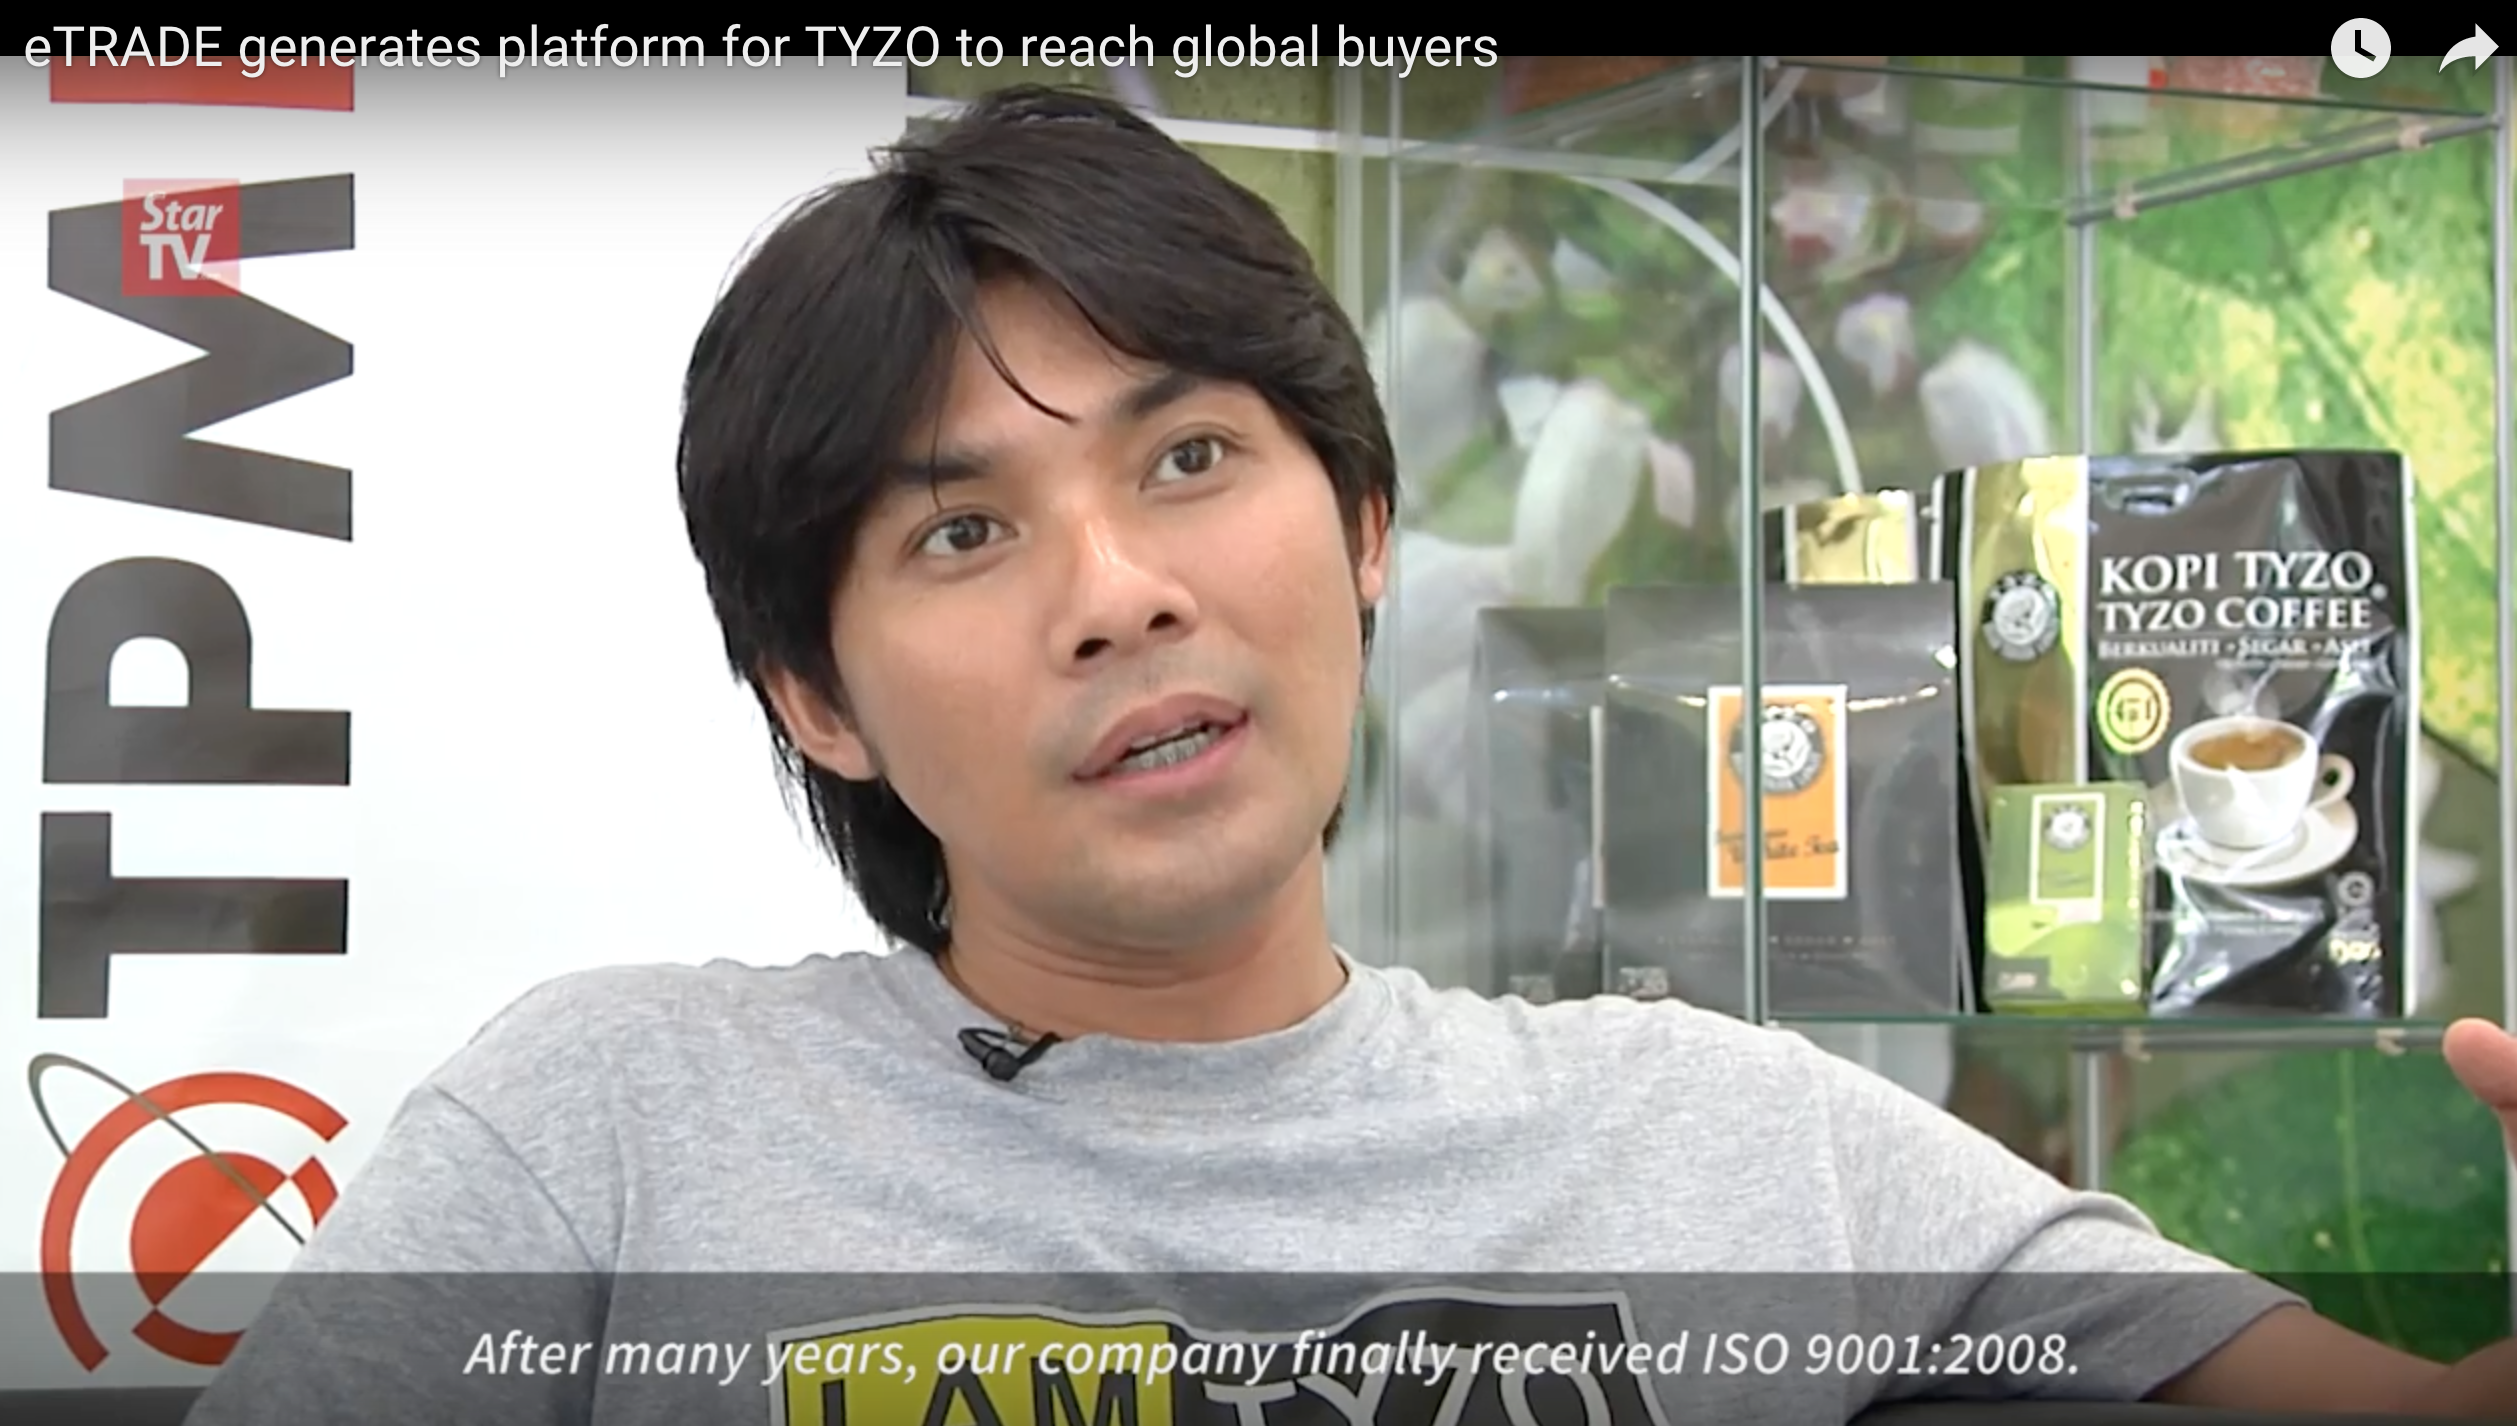 eTRADE generates platform for Tyzo to reach global buyers